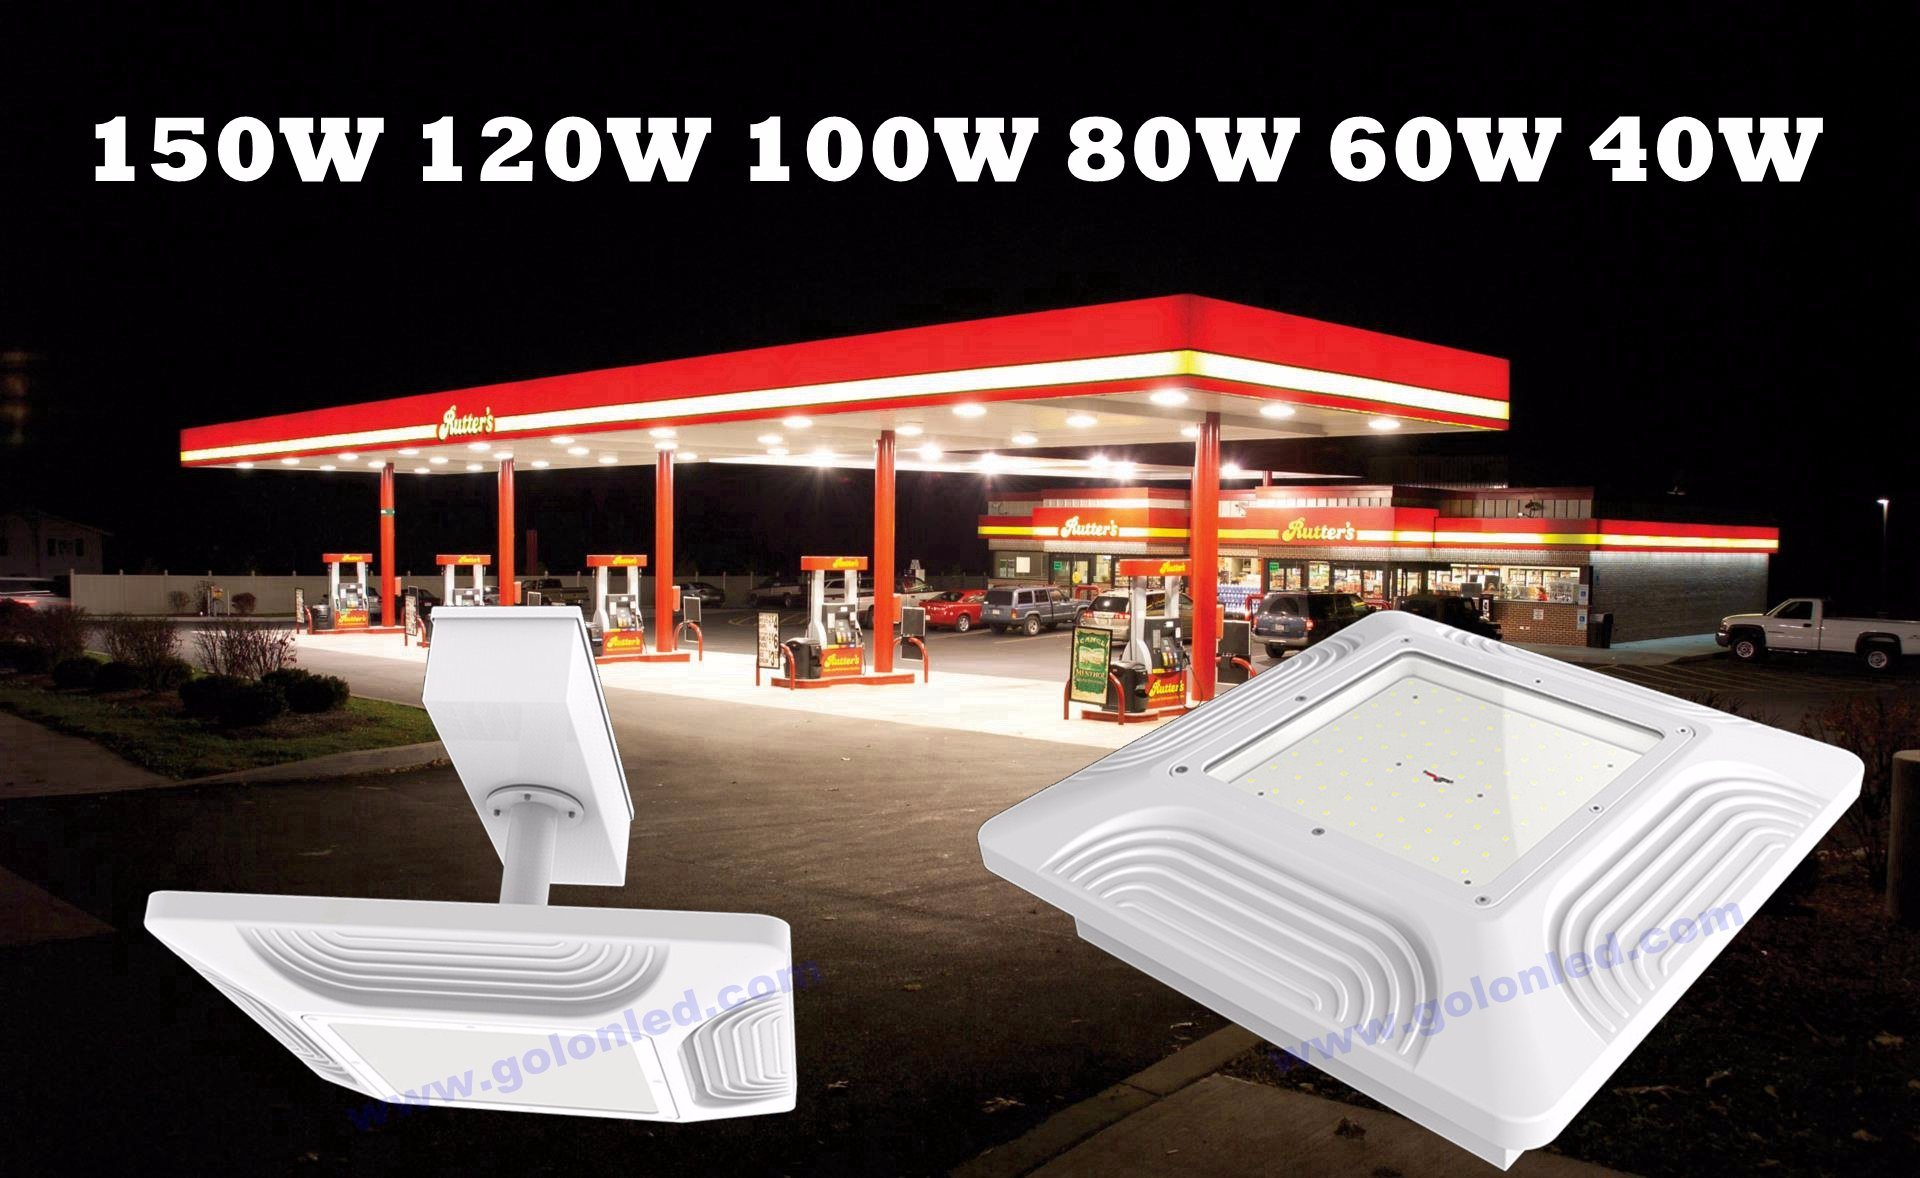 Recessed Ceiling Mounting Lighting 60W 80W 100W 120W 150W Canopy Lights Manufacturer Explosion Proof LED Gas Station Light